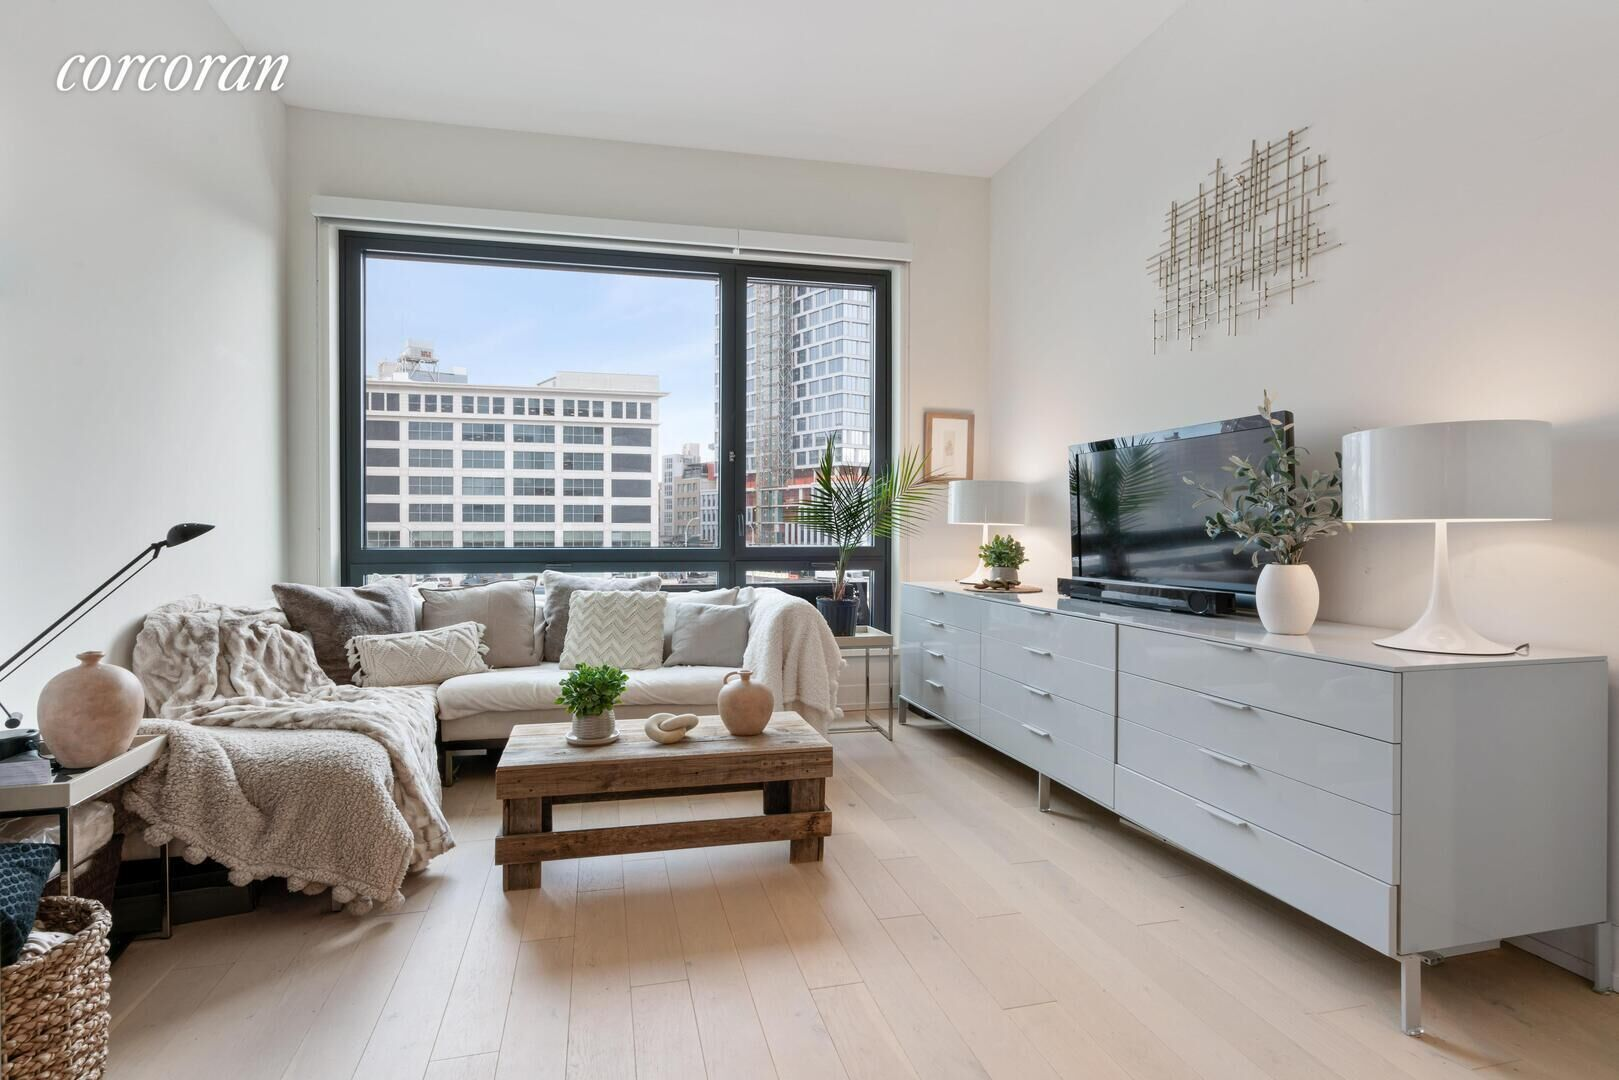 Apartment for sale at 550 Vanderbilt Avenue, Apt 206